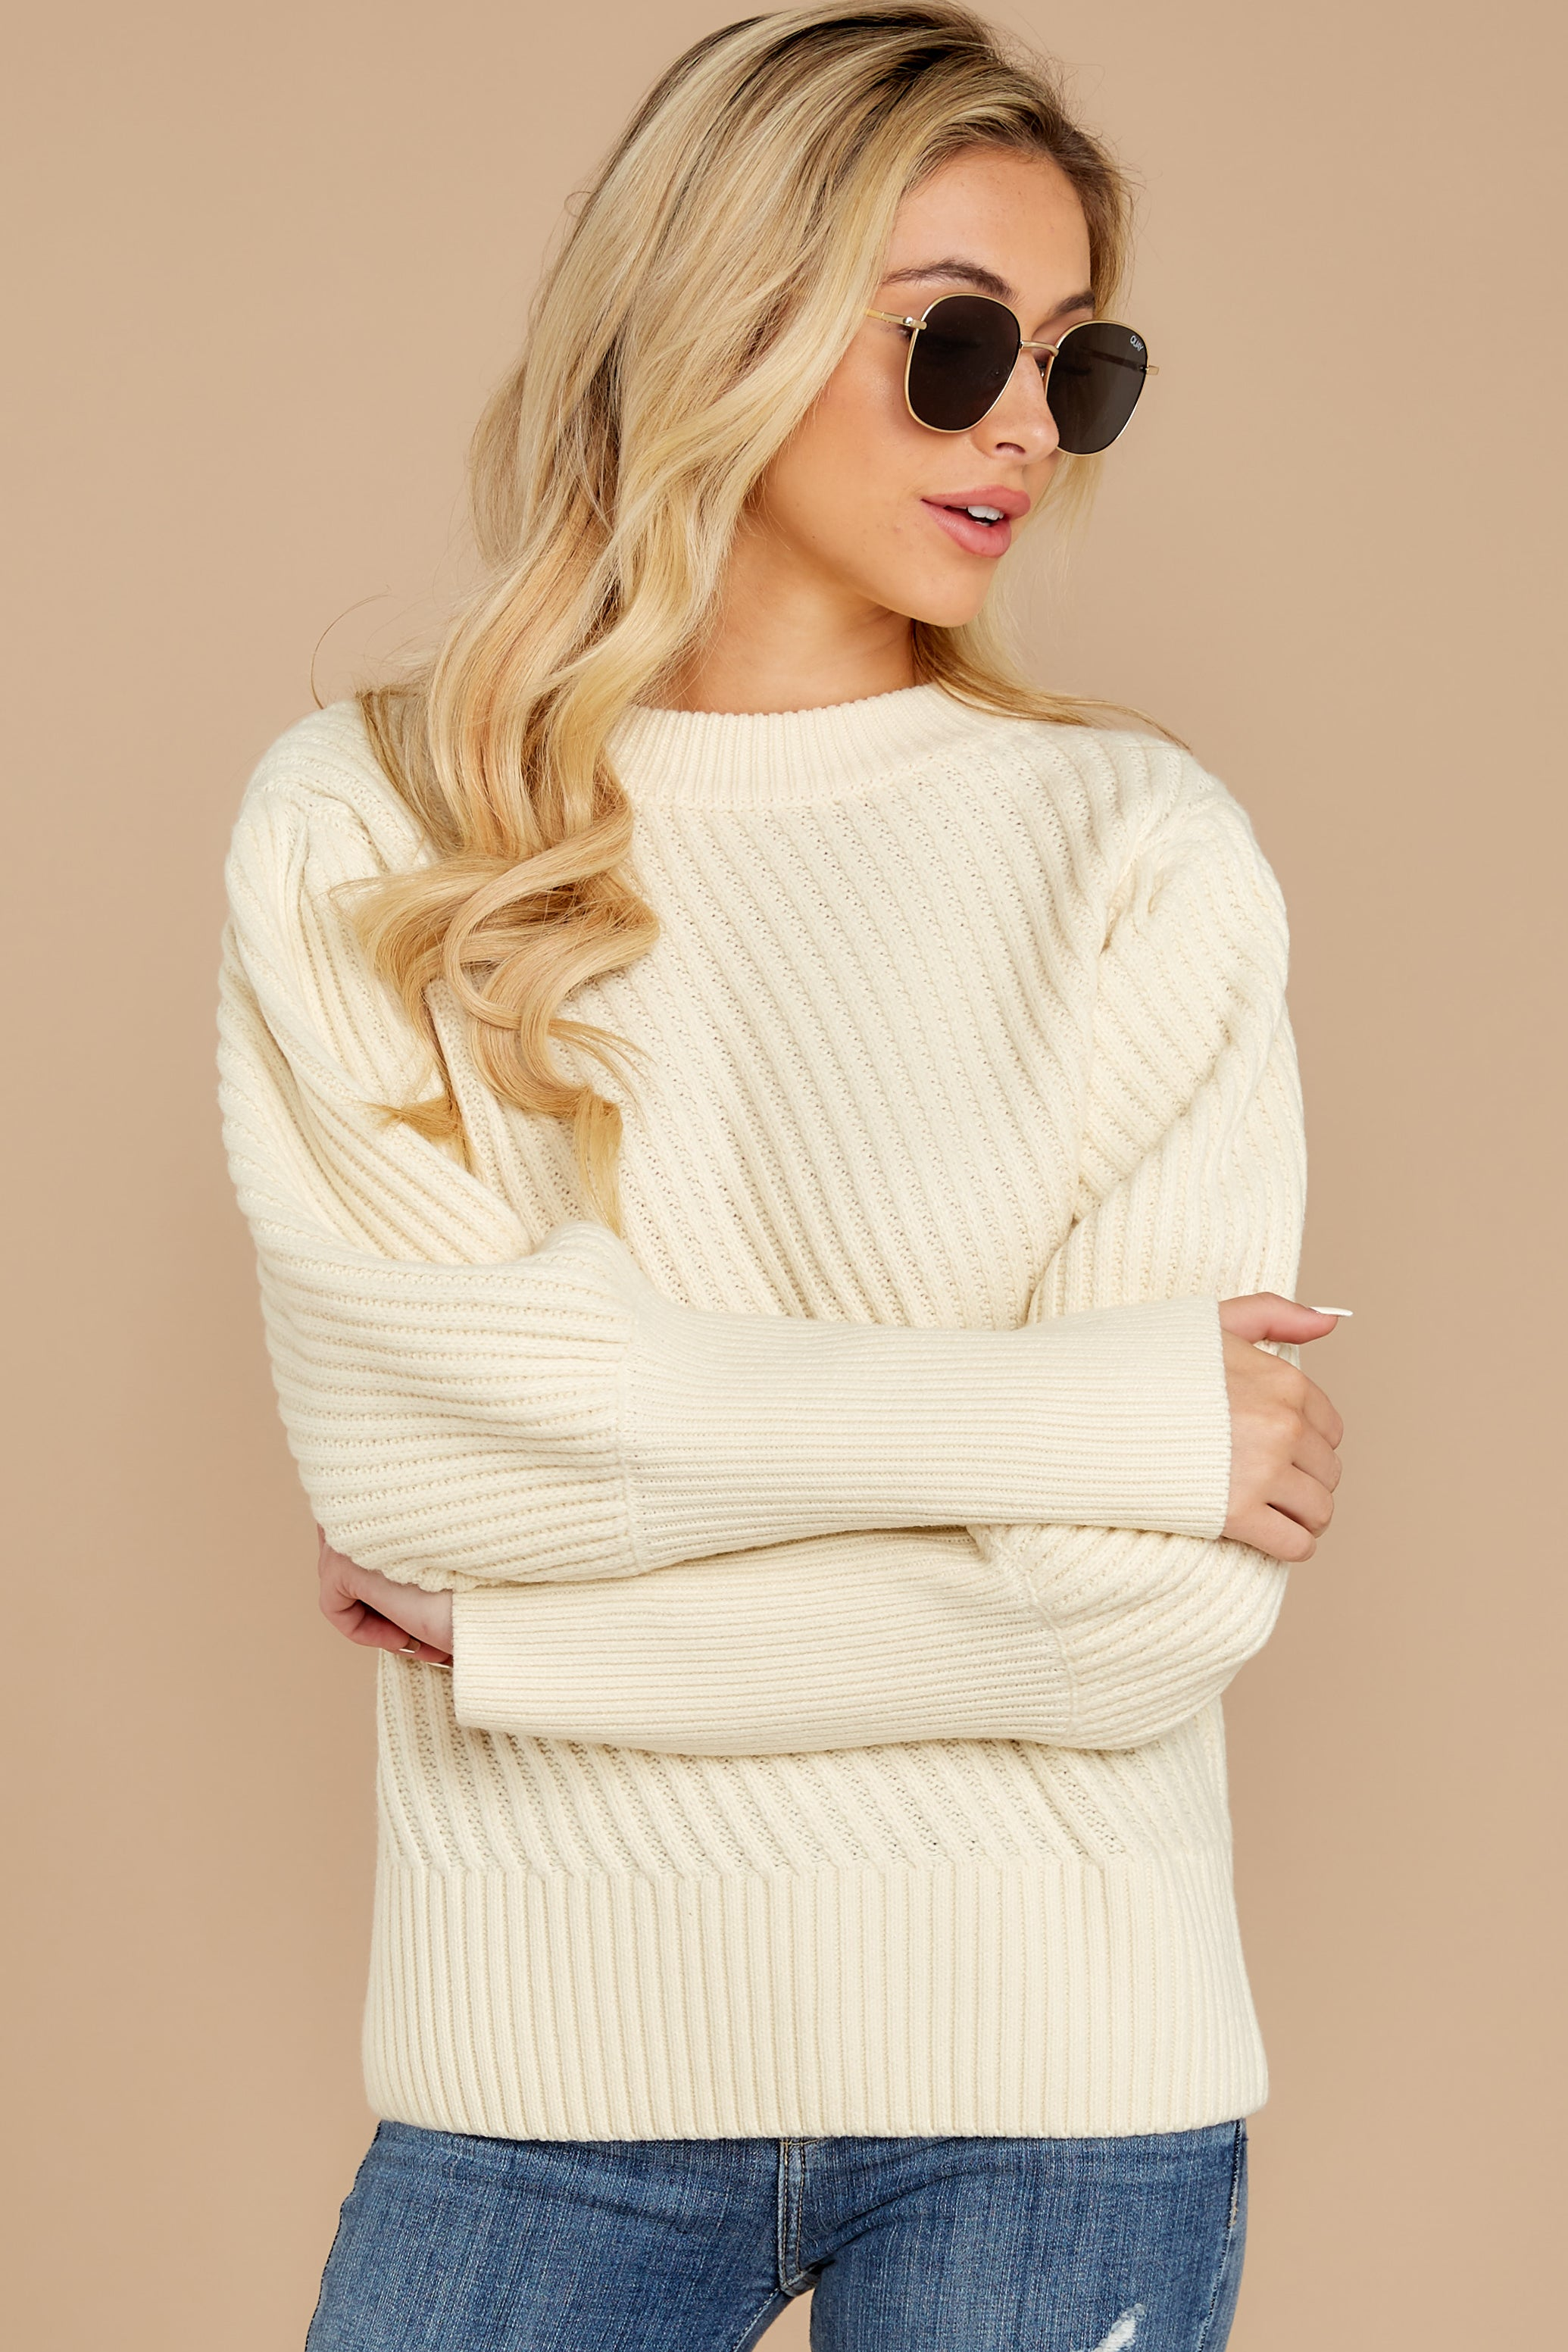 7 My Best Angle Ivory Sweater at reddressboutique.com